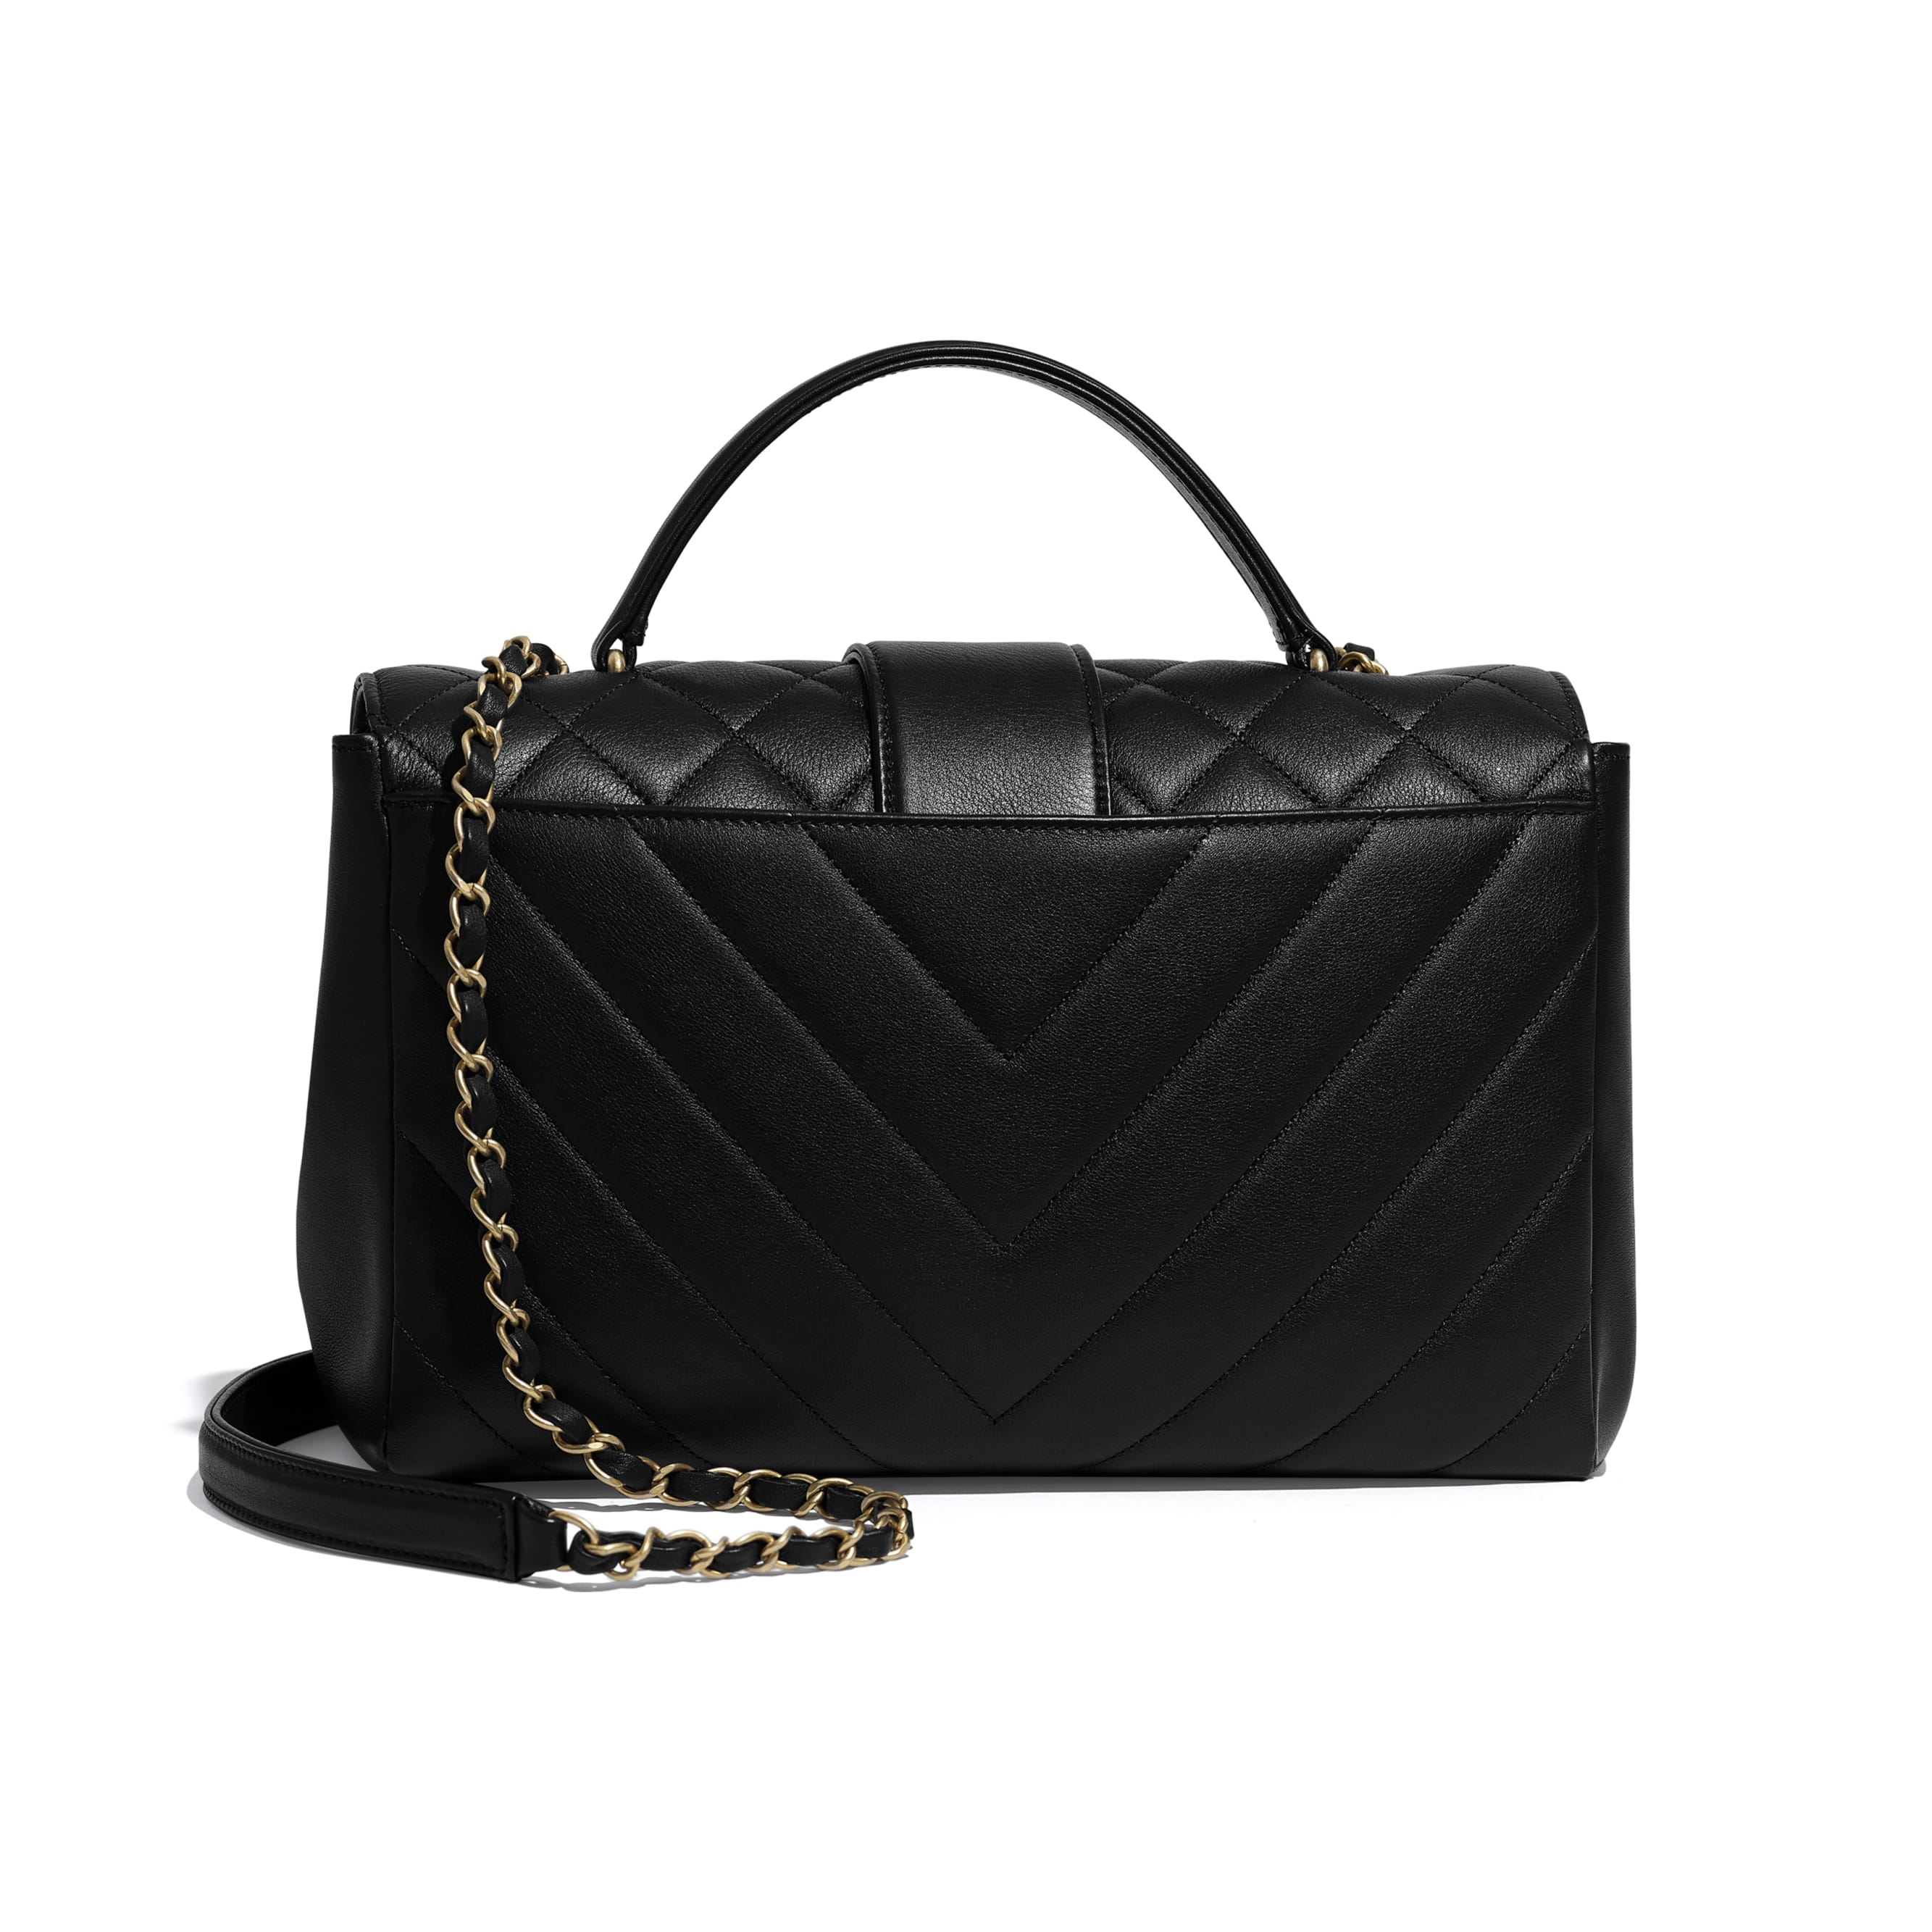 Flap Bag with Top Handle - Black - Calfskin & Gold-Tone Metal - Alternative view - see standard sized version